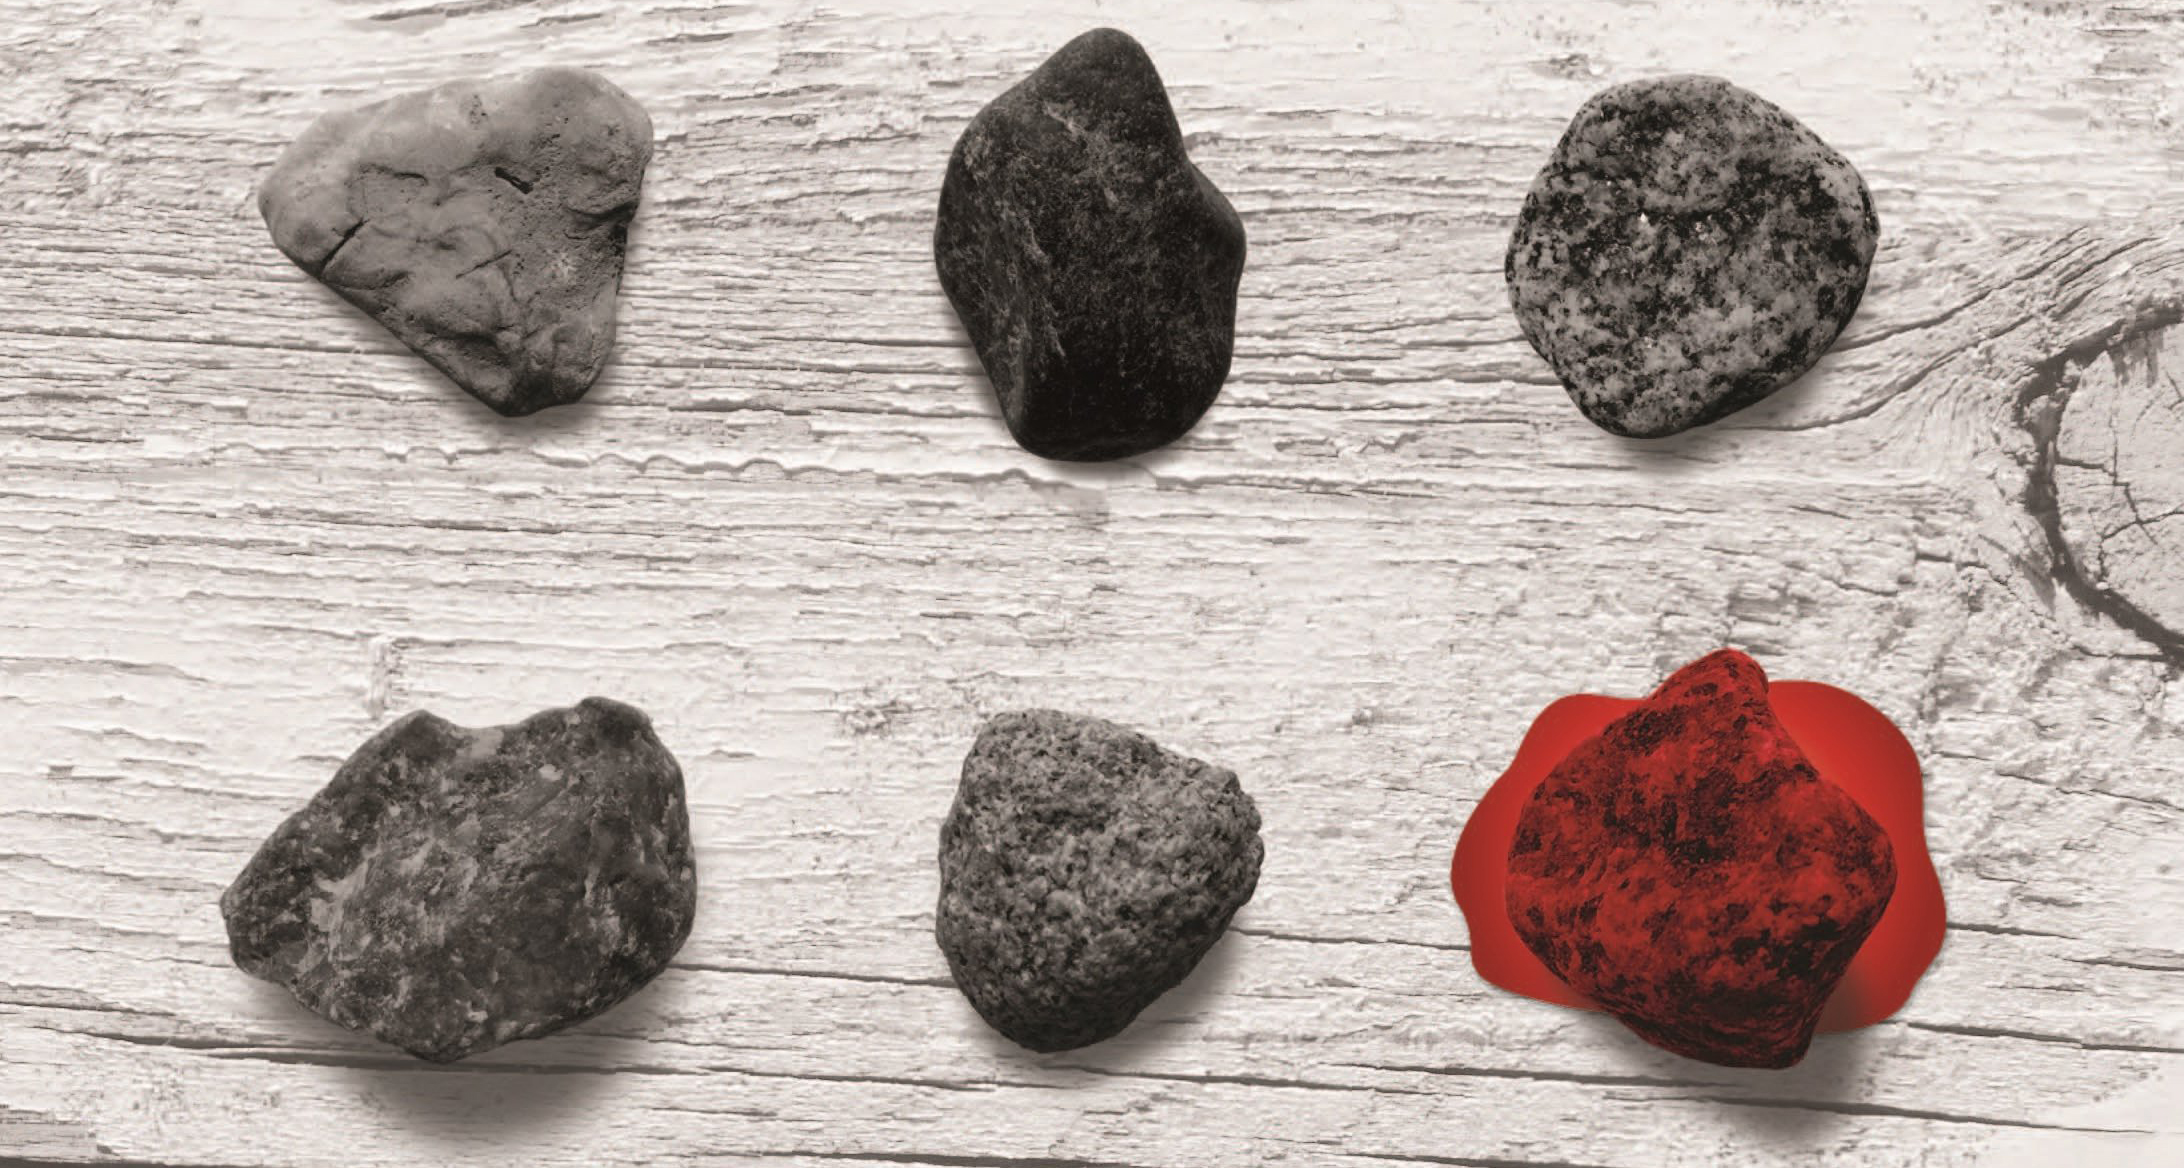 stones against wood surface, with one stone in blood red